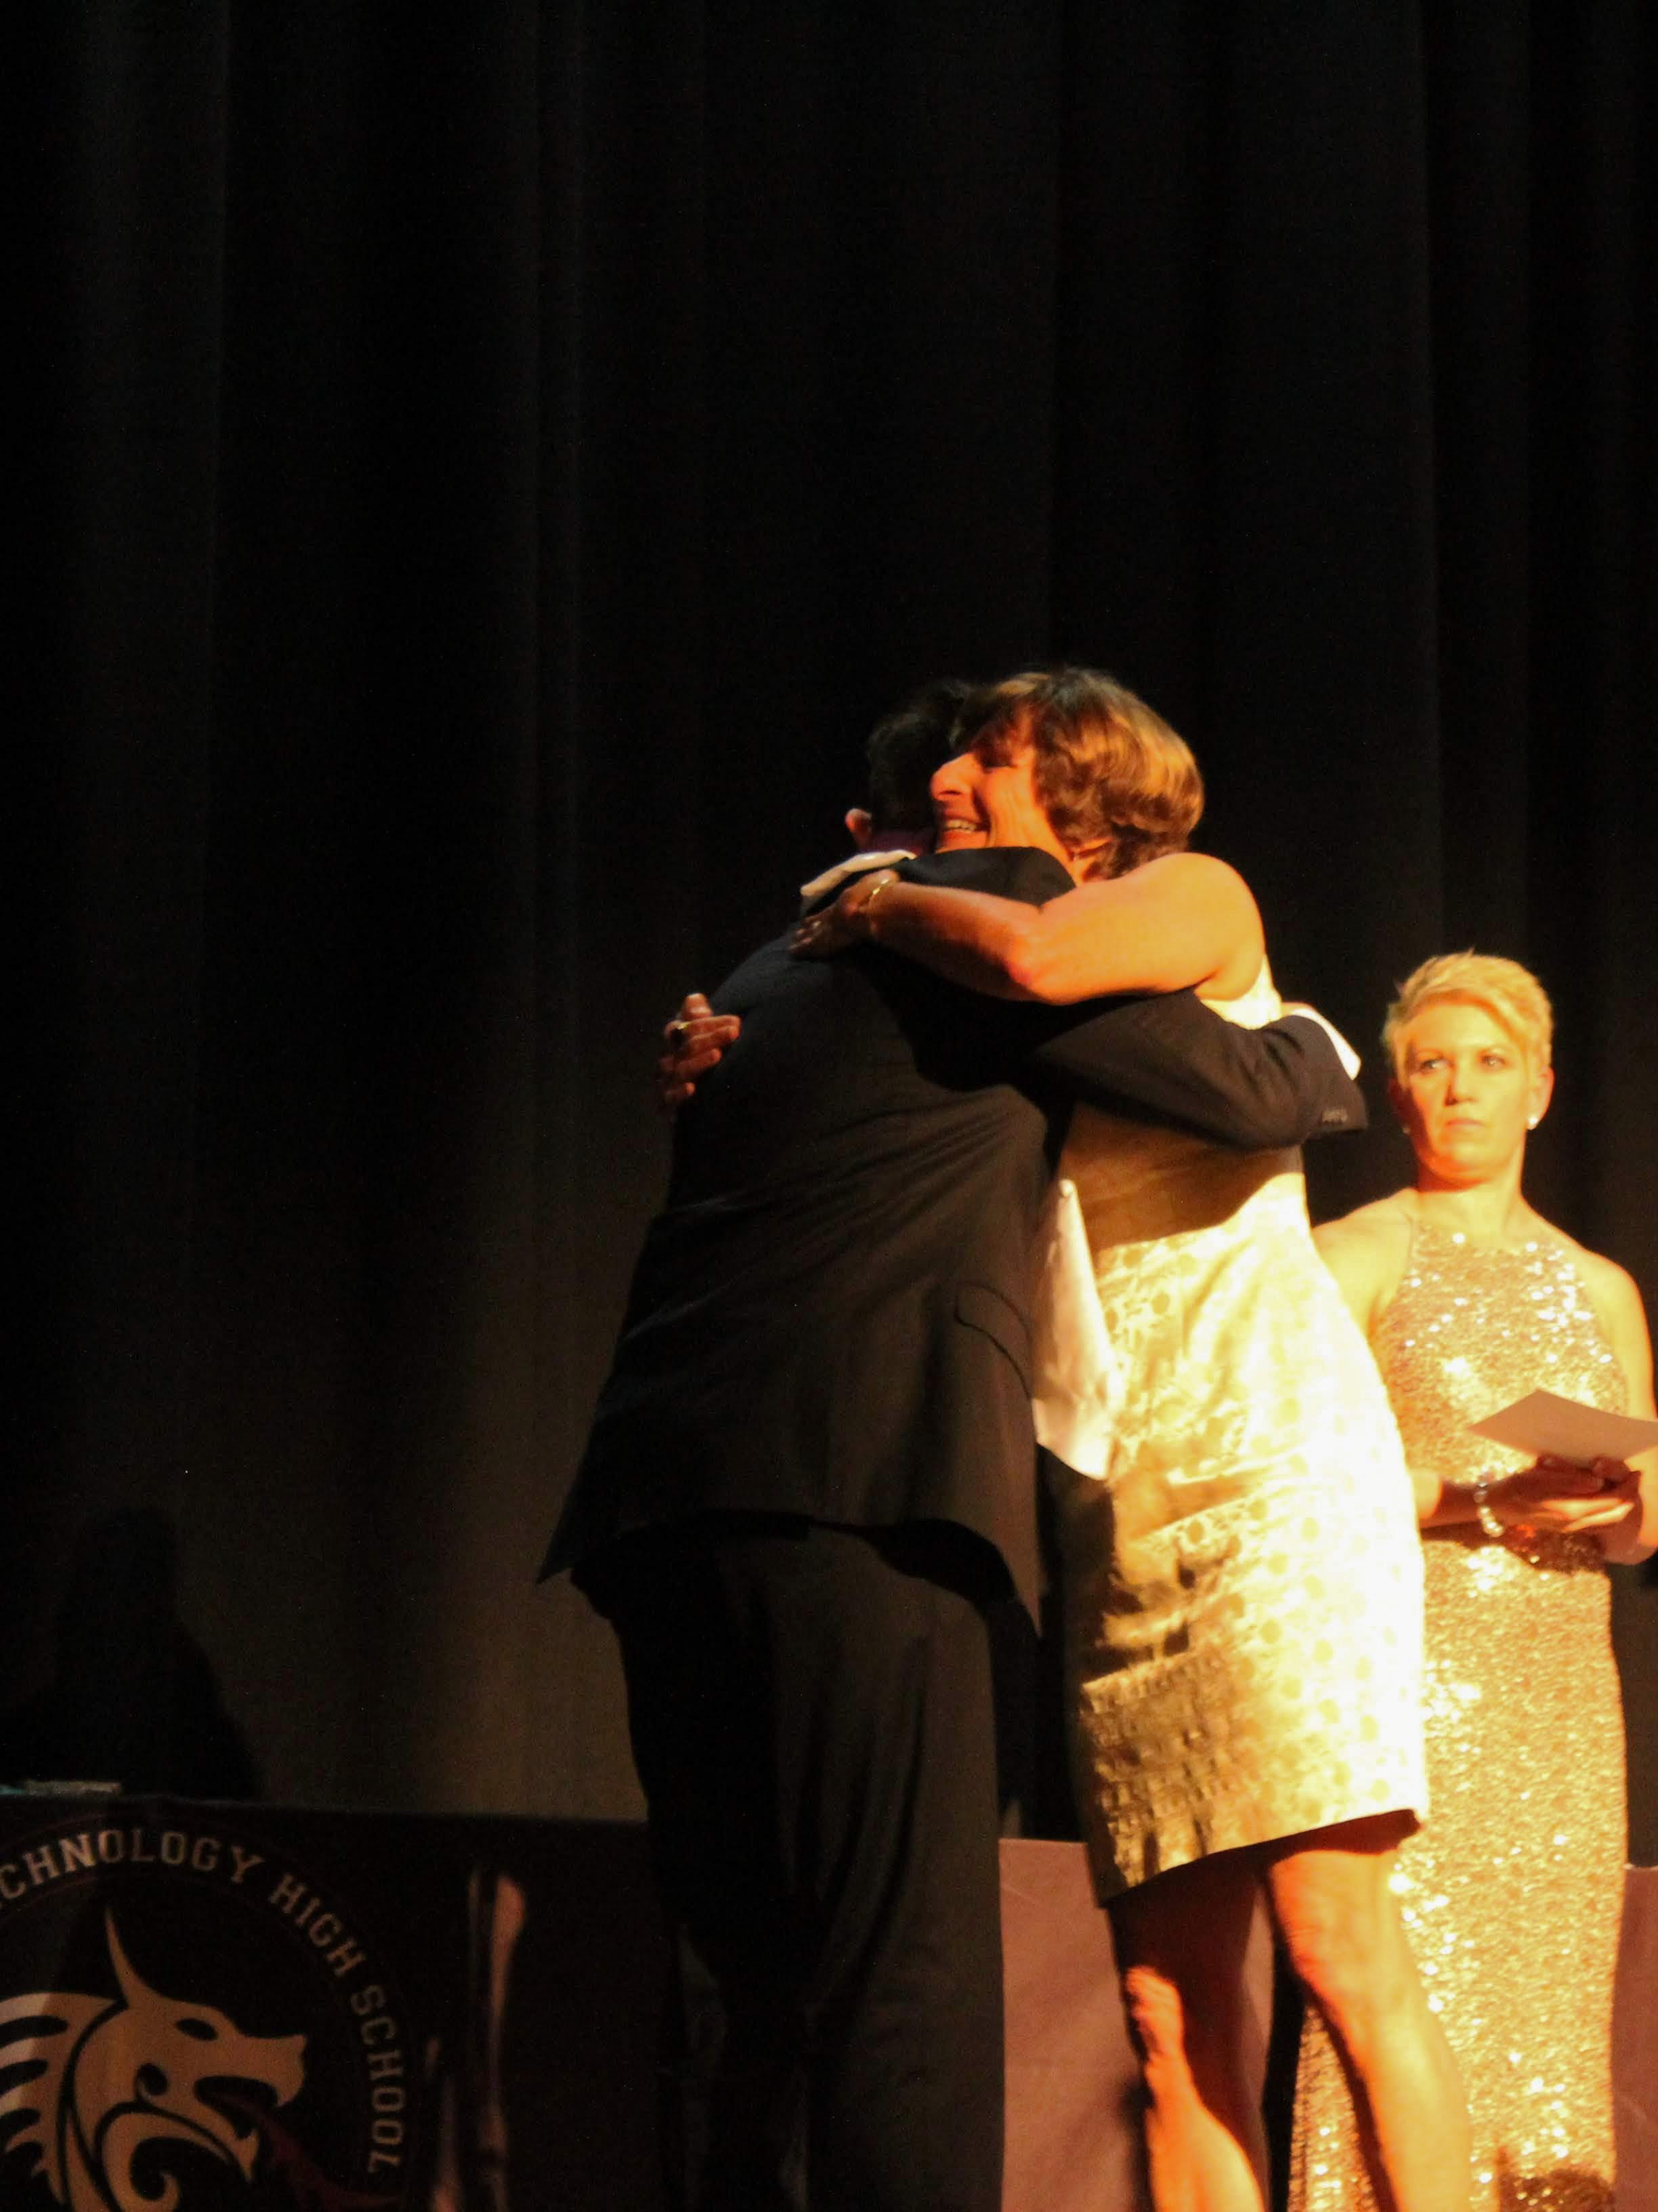 Cherie Eulau congratulates an award winner with a hug. Credit: Quinn Dinkler / The Foothill Dragon Press